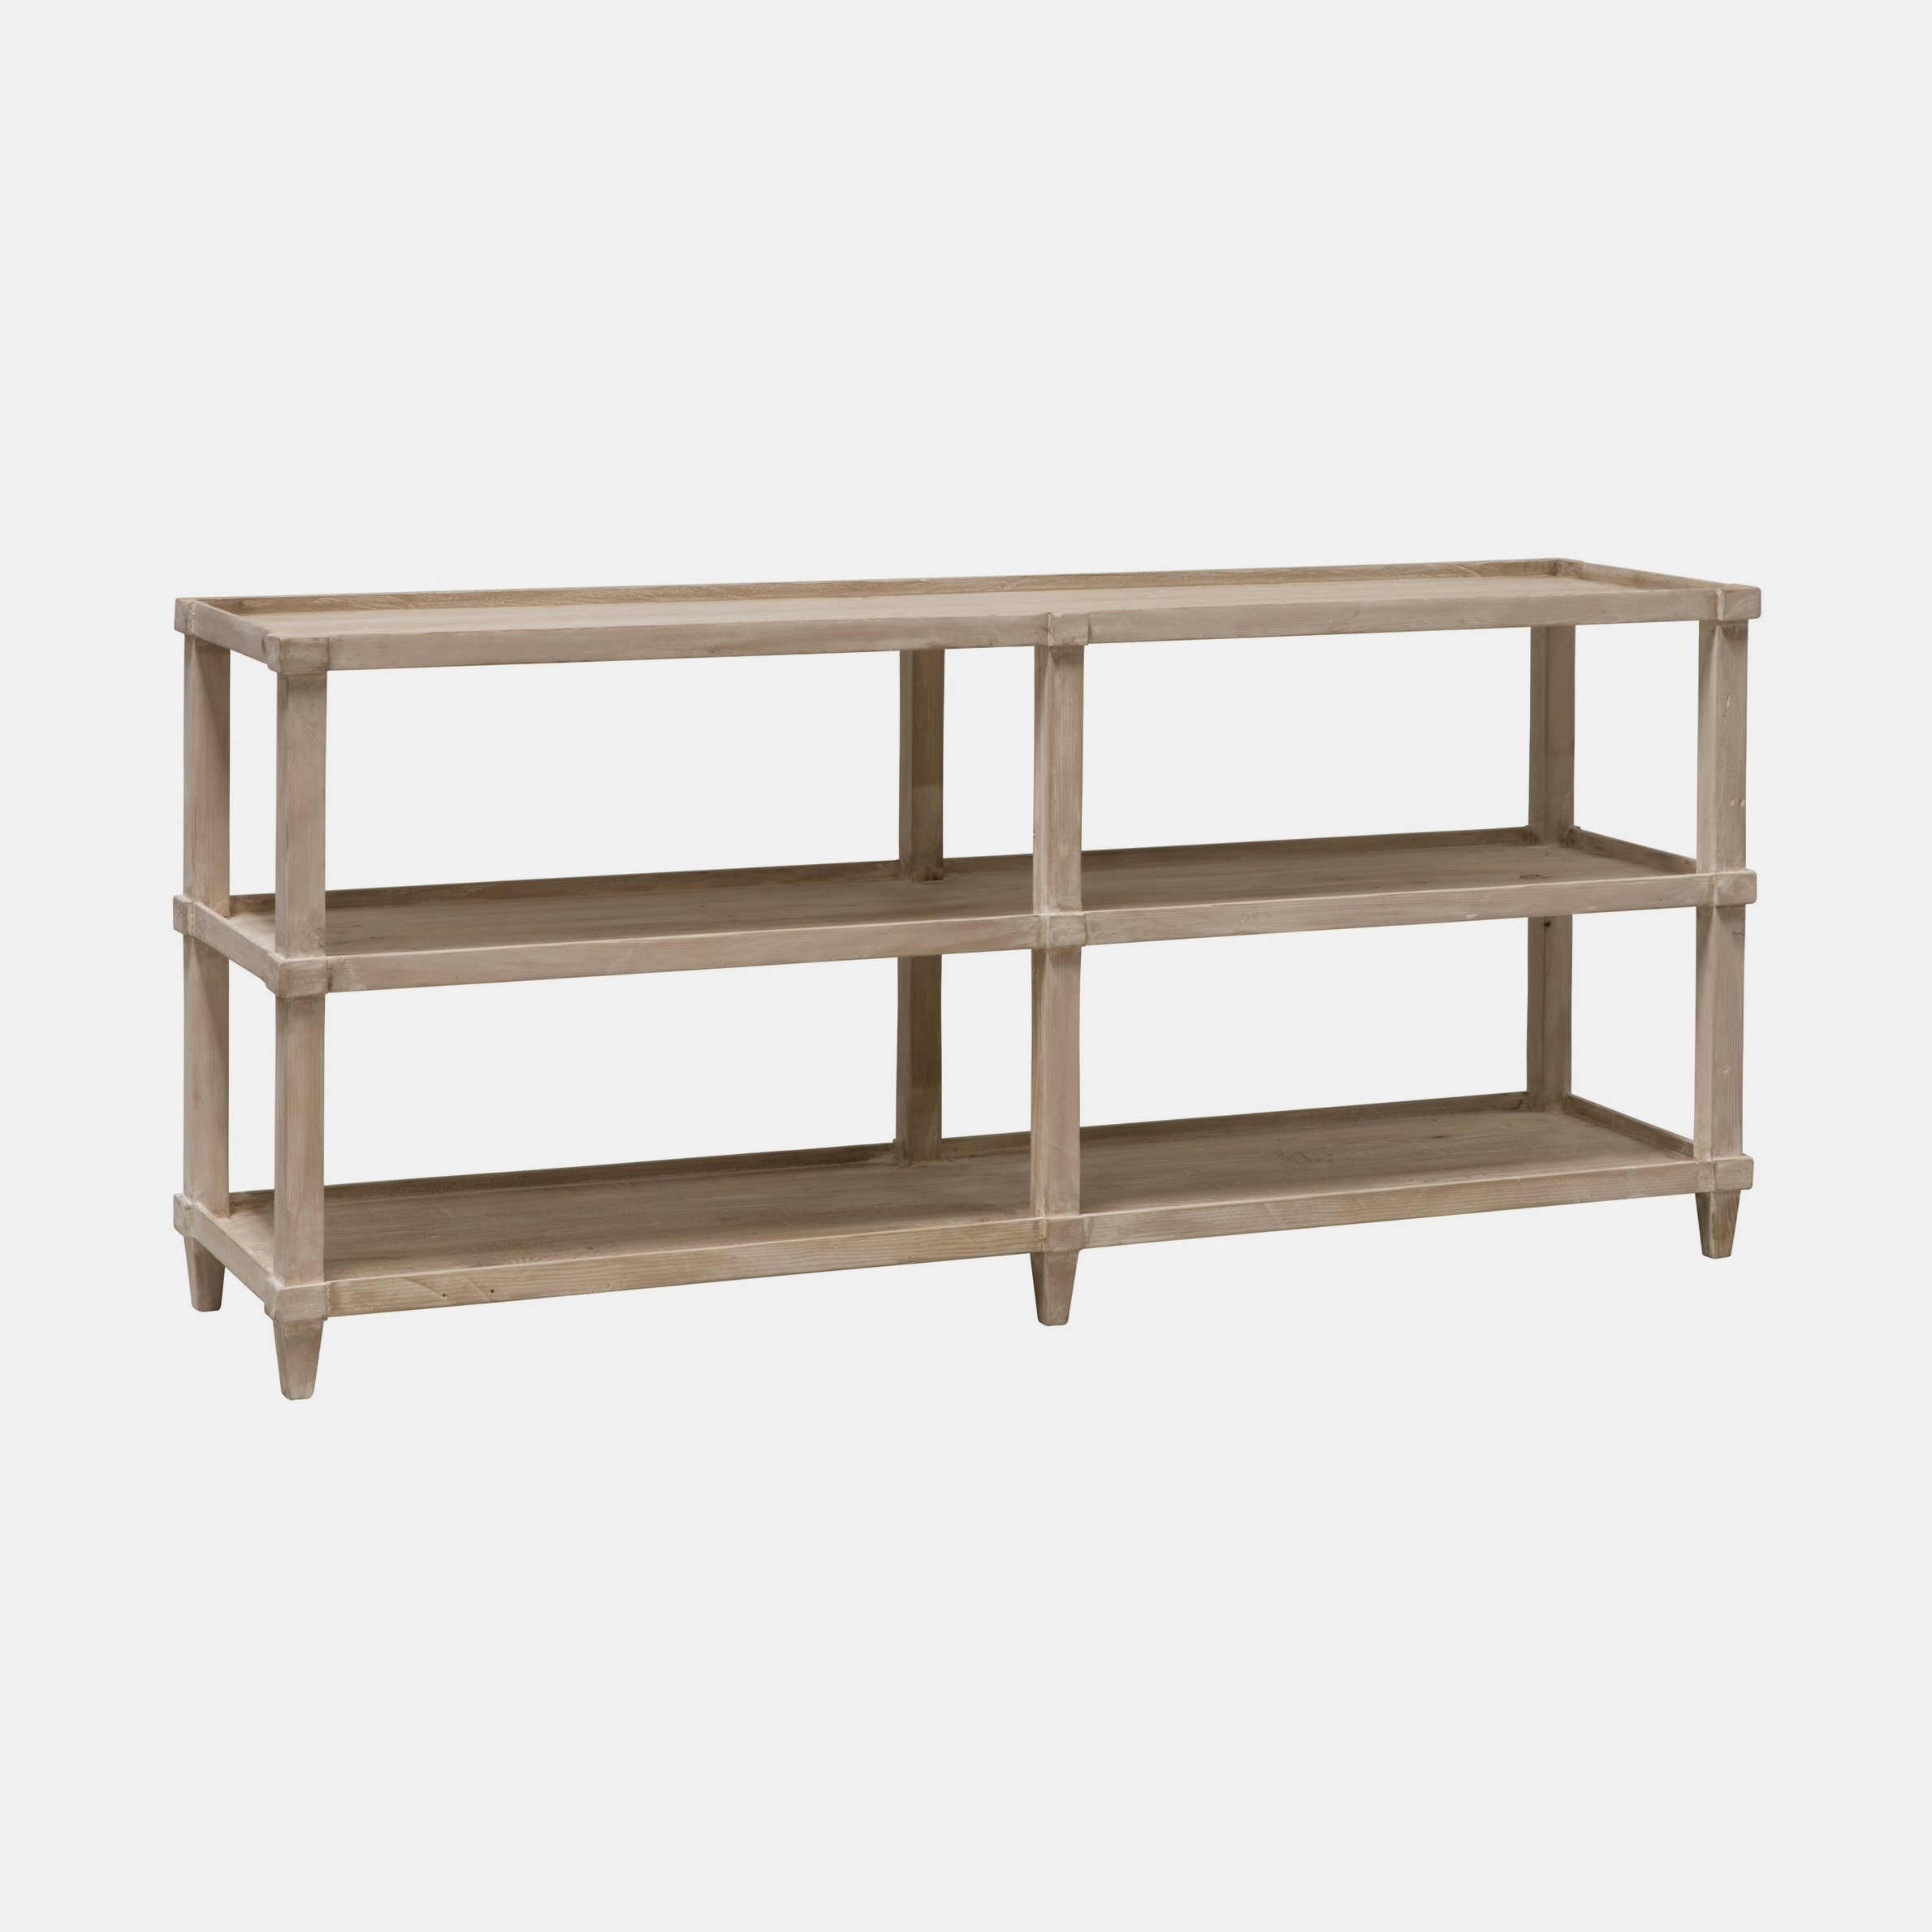 """Lilia Console  84""""l x 20""""d x 32""""h 72""""l x 18""""d x 32""""h 60""""l x 18""""d x 32""""h Available in gray wash wax (shown) or espresso. Also available with casters. SKU7239CFC"""